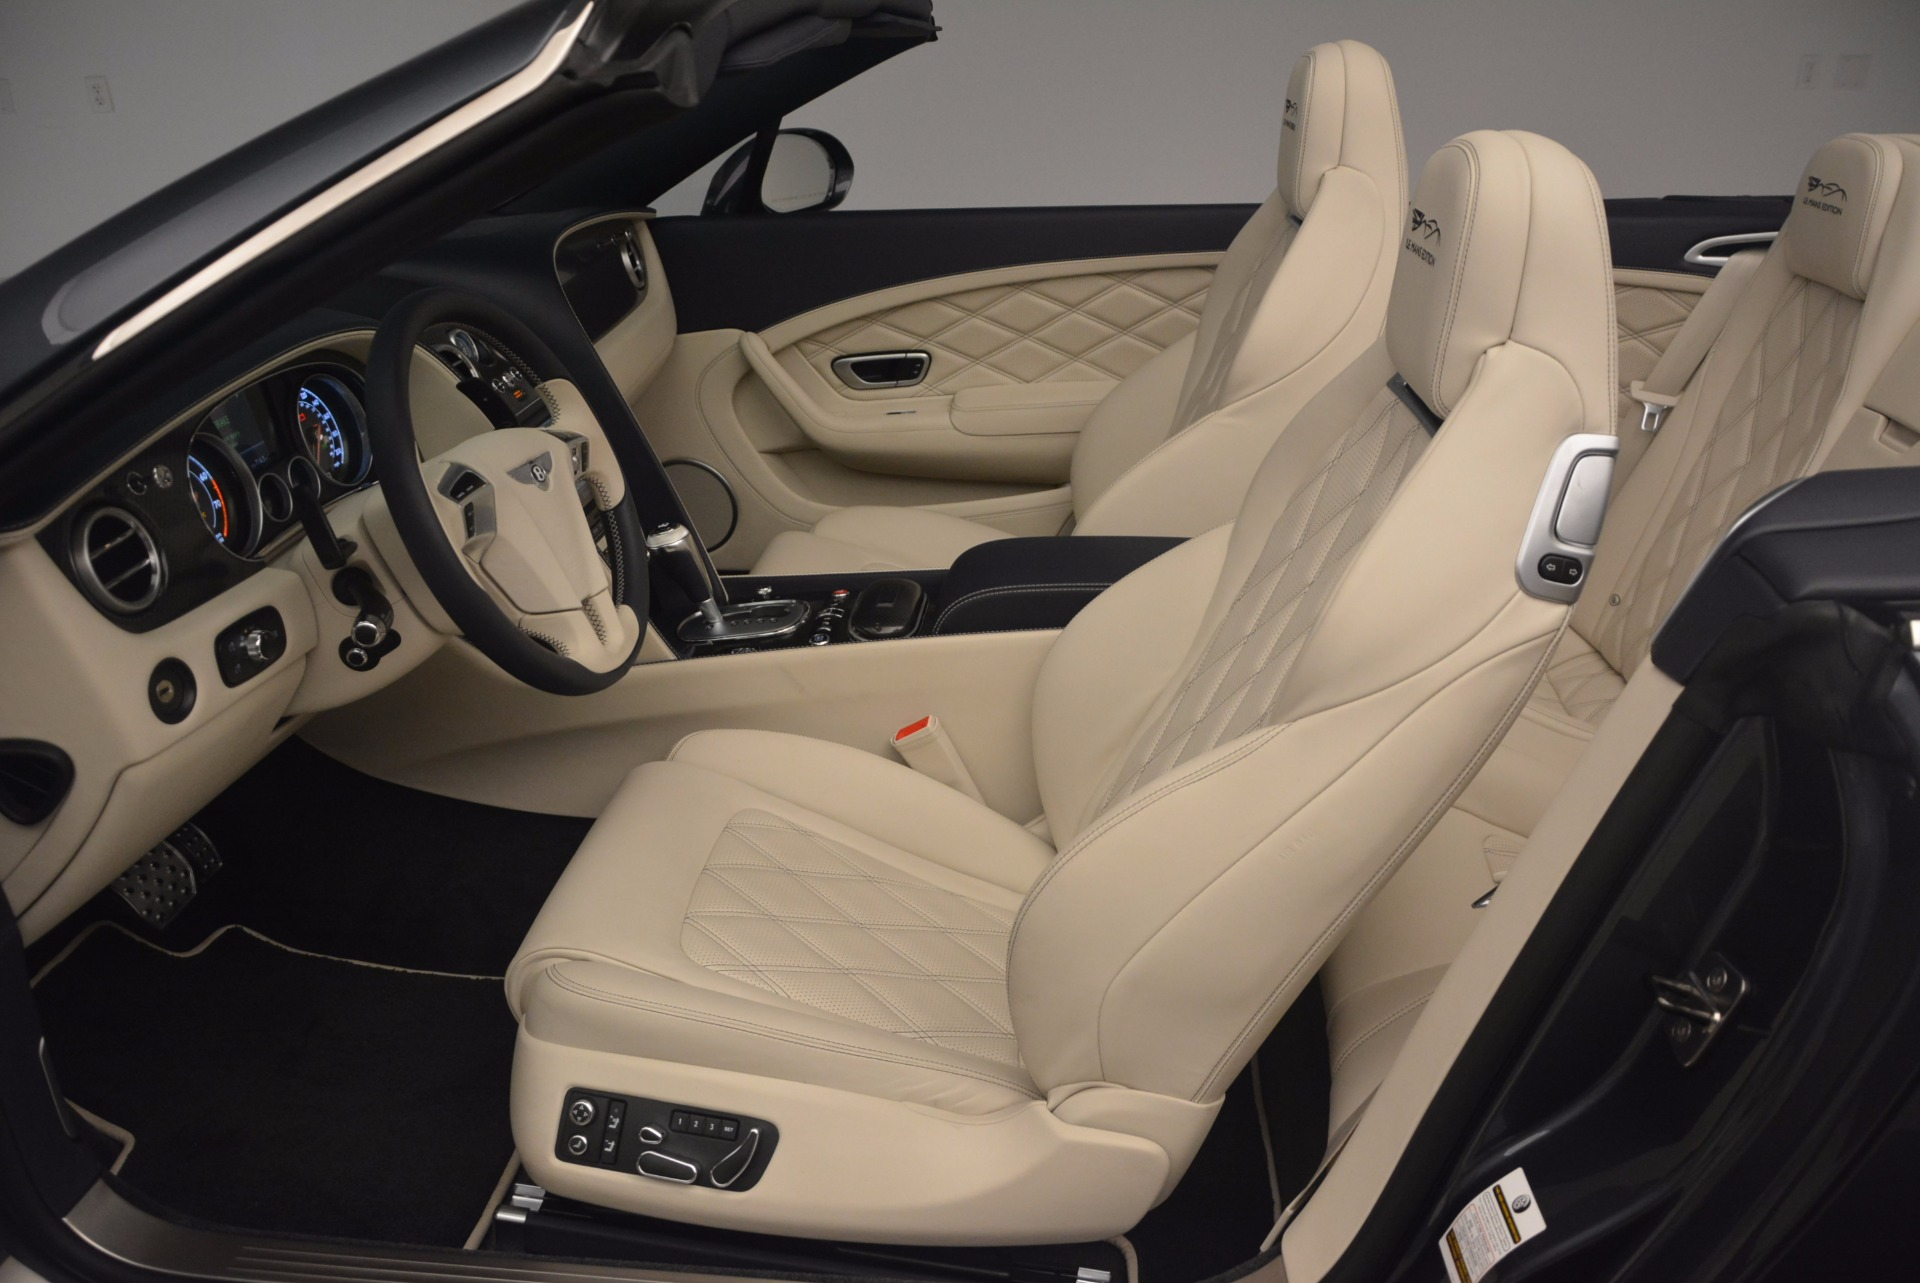 Used 2013 Bentley Continental GT V8 Le Mans Edition, 1 of 48 For Sale In Westport, CT 1288_p34